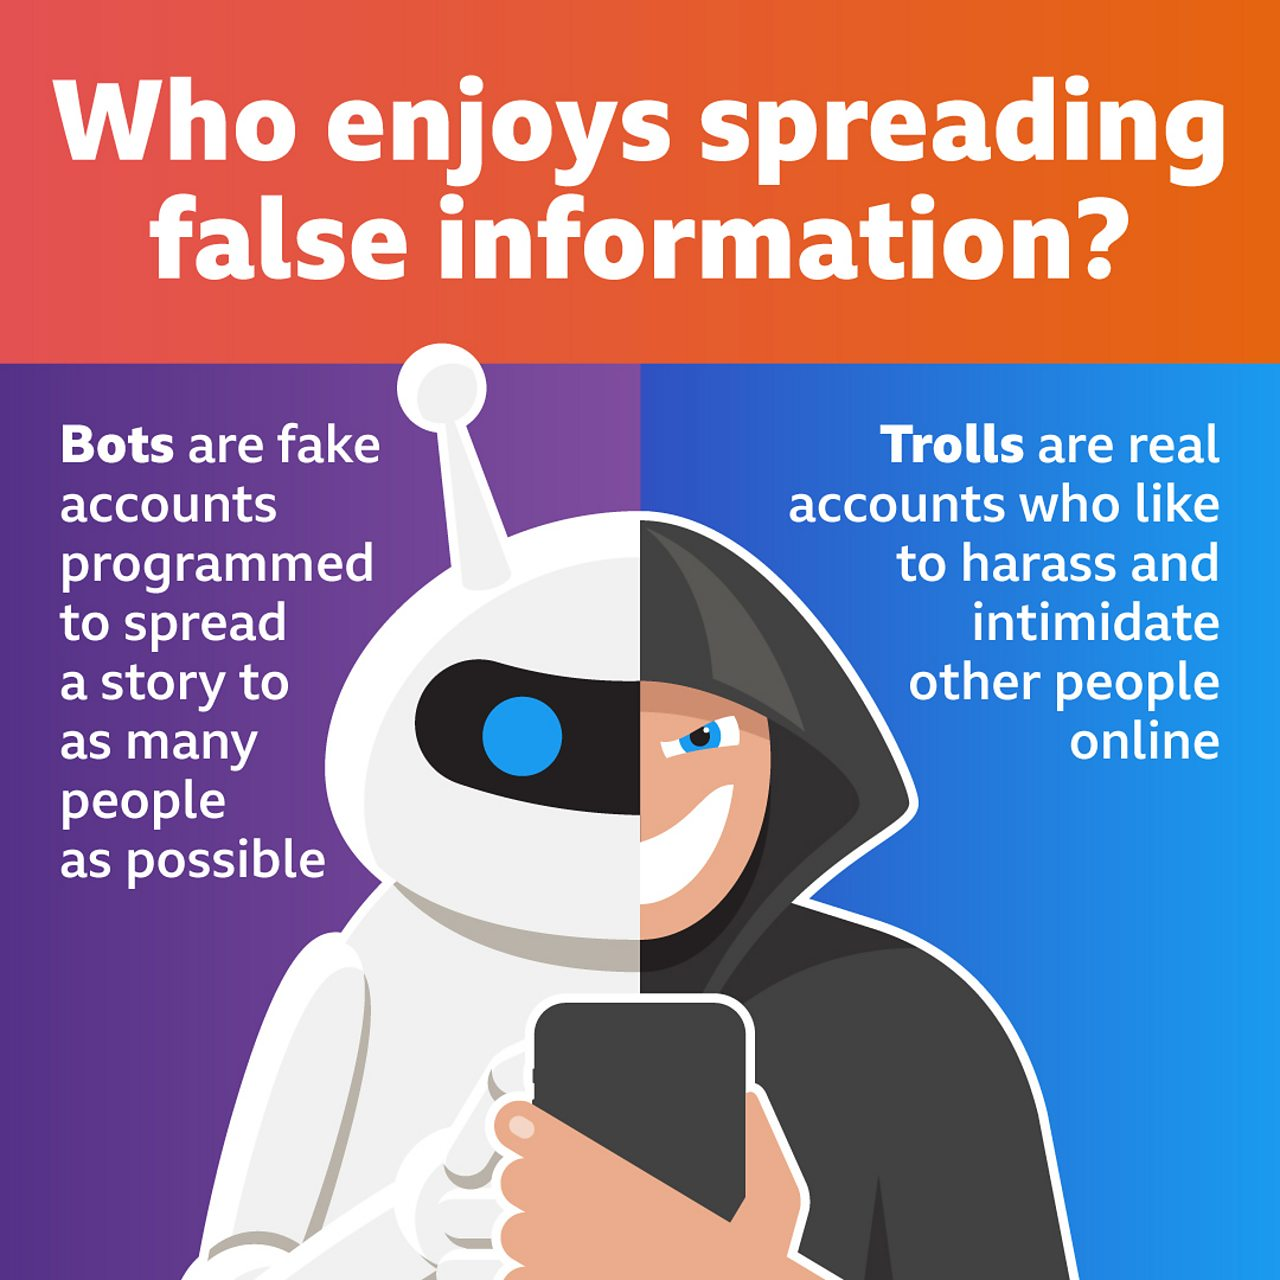 """An illustration with the title """"Who enjoys spreading false information?"""". The image is split in half. On the left-hand side is cartoon robot, with the text """"Bots are fake accounts programmed to spread a story to as many people as possible"""". On the right-hand side is a hooded figure clutching a phone, with the text """"Trolls are real accounts who like to harass and intimidate other people online""""."""